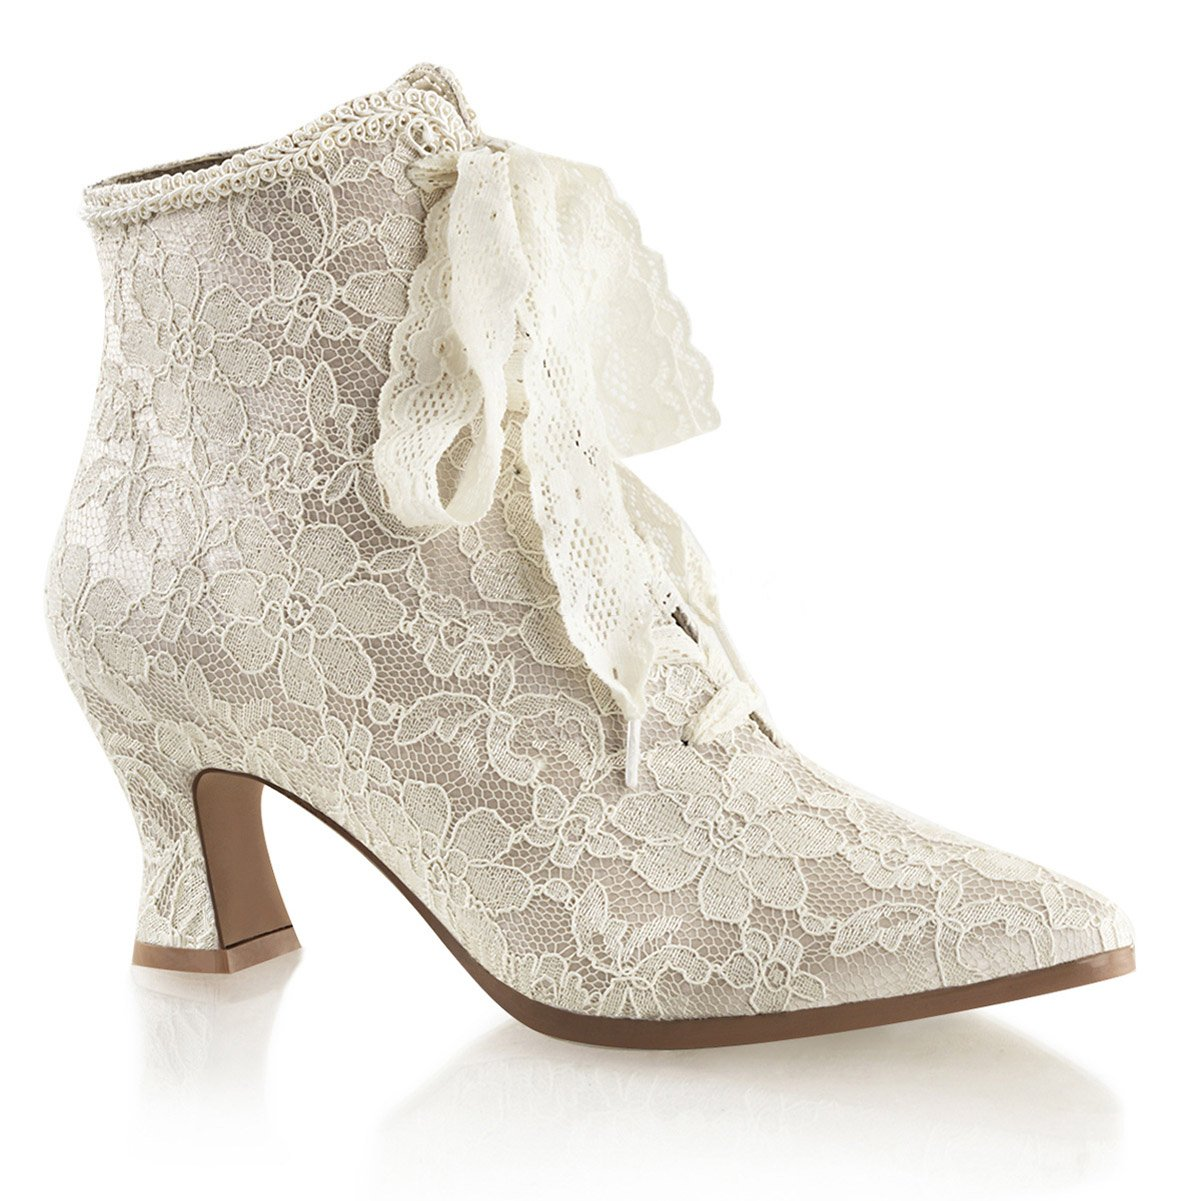 Summitfashions Womens Champagne Lace Wedding Boots with 2.75 Inch Low Heel and Lace Up Front Size: 9